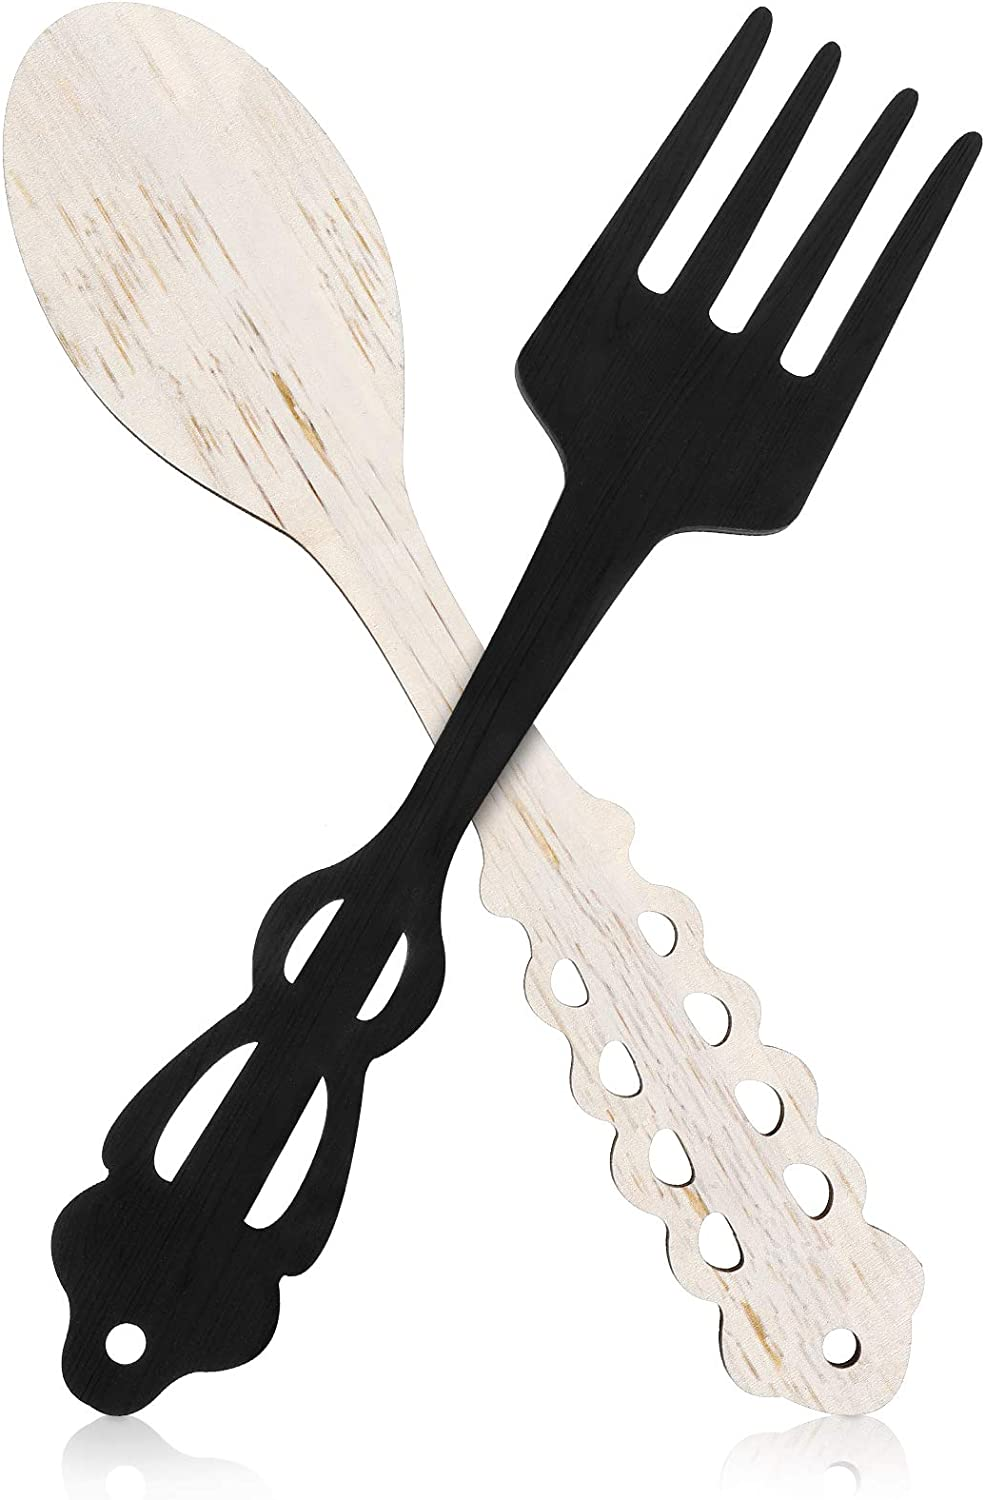 Jetec 2 Pieces Large Fork and Spoon Wall Decor Wooden Spoon Shaped Wall Sign Fork Shaped Hanging Sign Farmhouse Kitchen Wall Decors for Home Kitchen Dining Living Room Decor (White, Black)